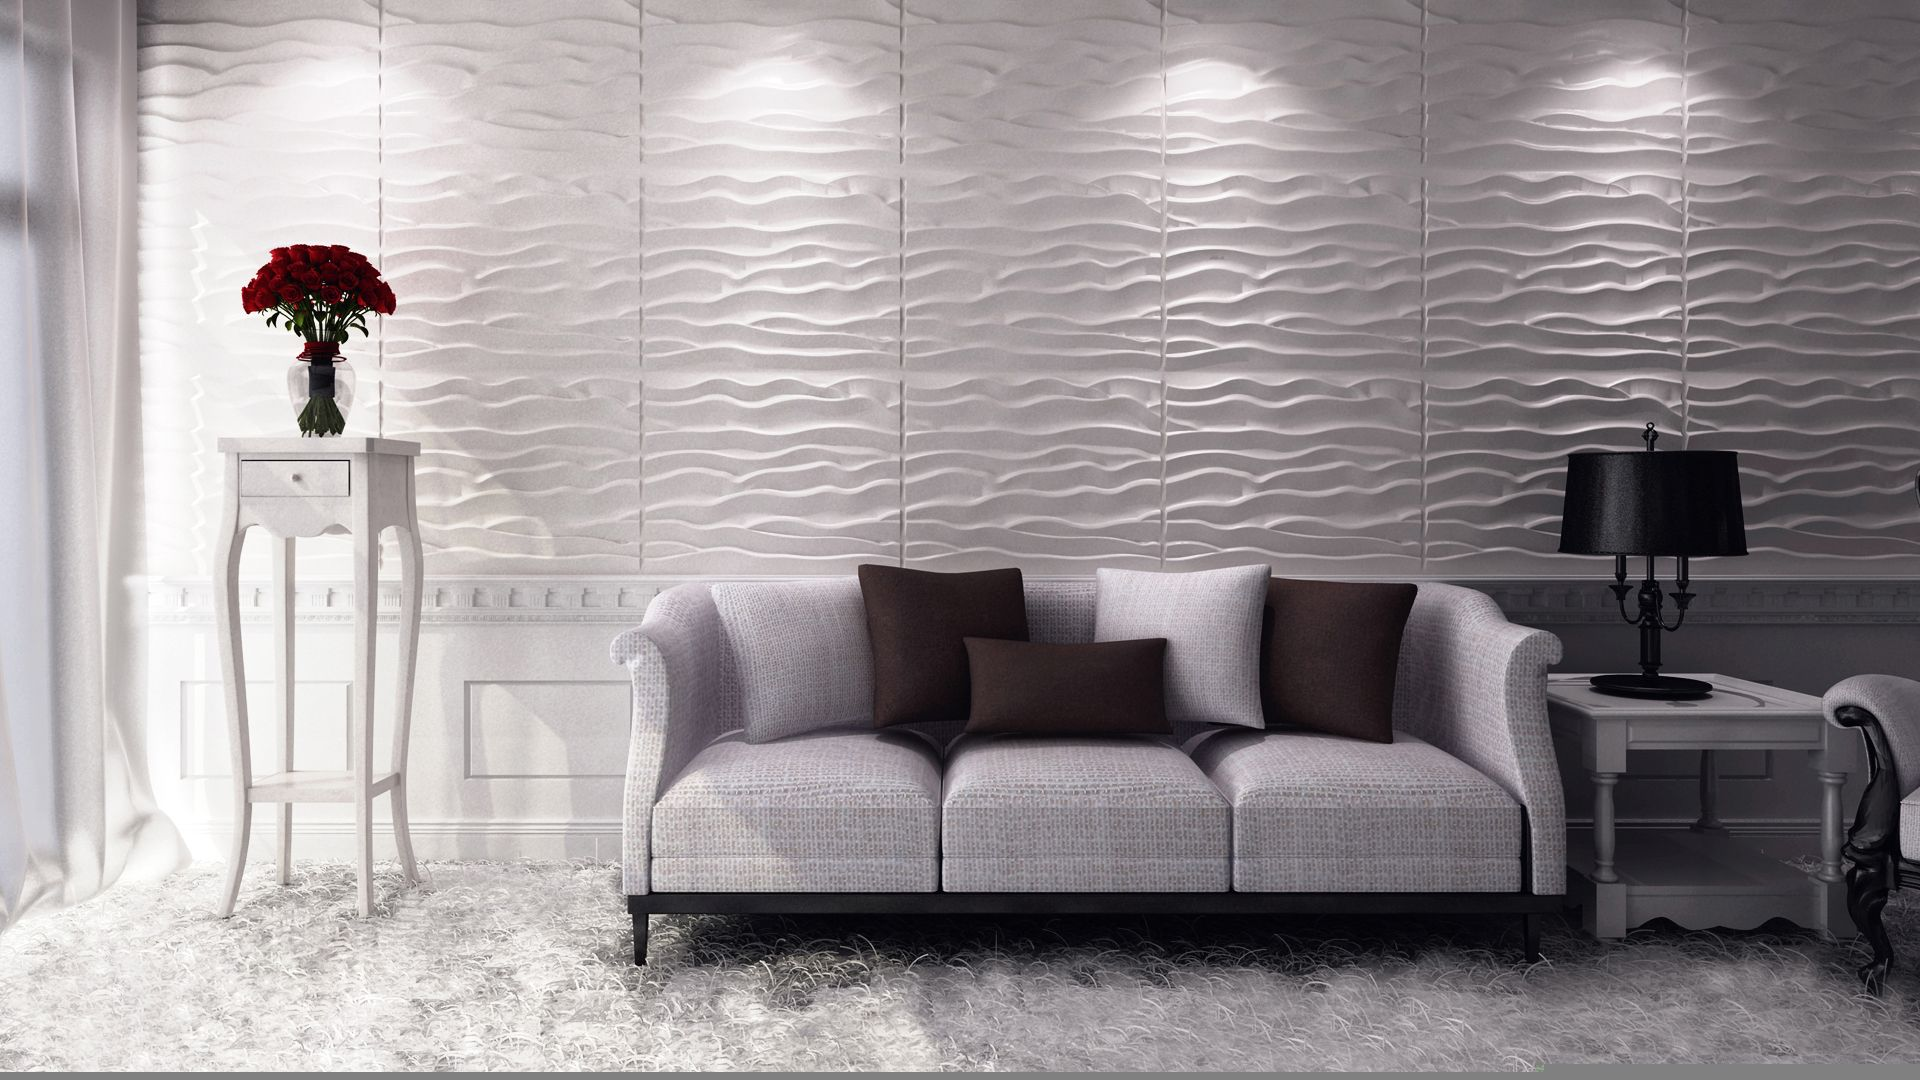 Moderne Deckenpaneele Design Ideen 3d Wandpaneele Deckenpaneele Tapeten, Fototapeten, Sonne… In 2020 | Design Living Room Wallpaper, Modern Wallpaper Living Room, Wallpaper Living Room